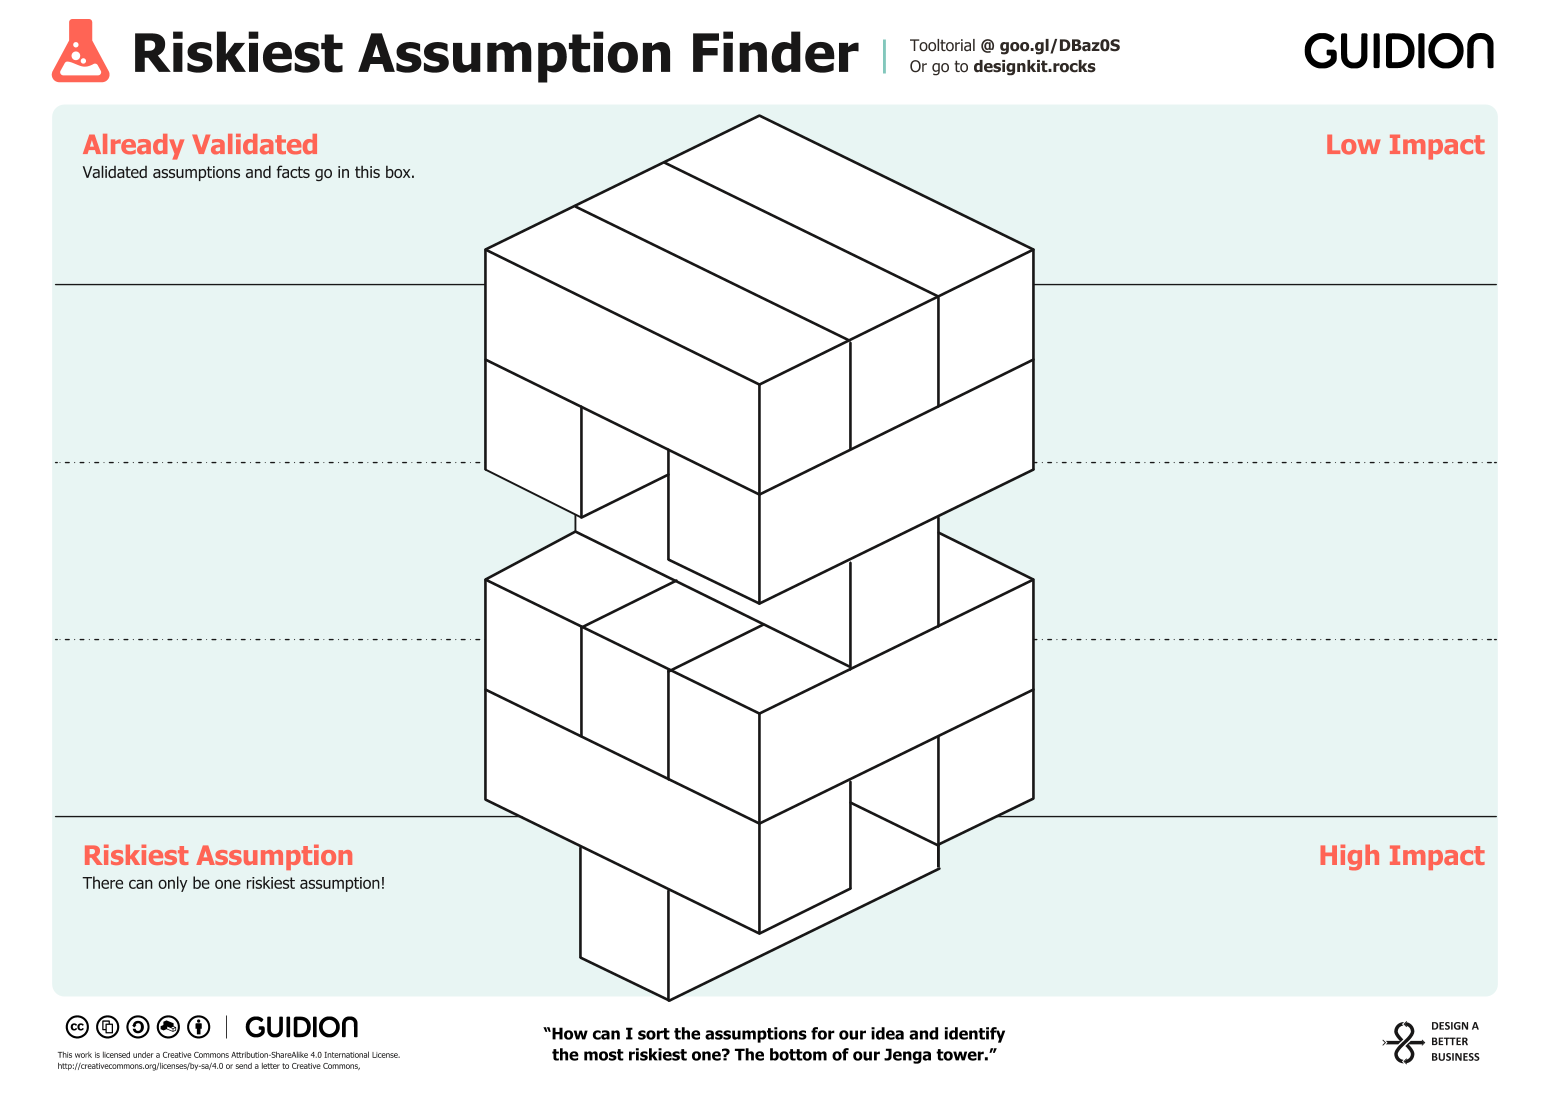 Riskiest Assumption Finder